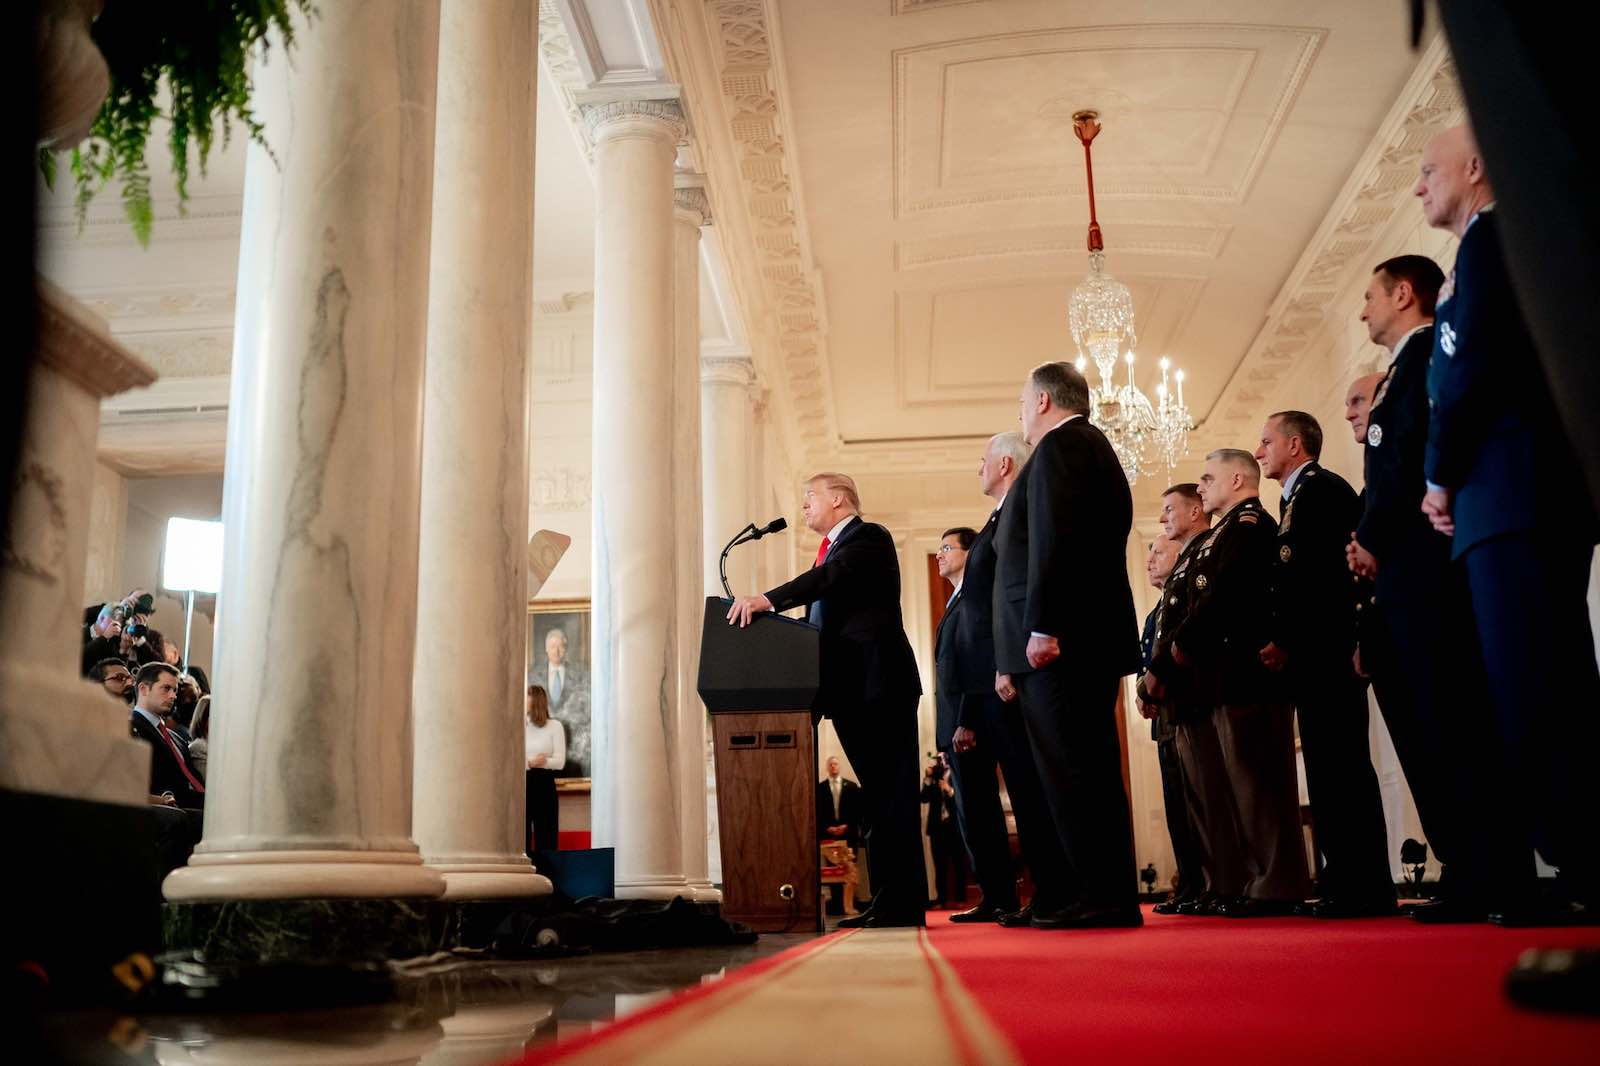 US President Donald Trump gives a televised address from the White House on 8 January, after Iran launched retaliatory missile strikes on US military targets in Iraq (Photo: The White House/Flickr)